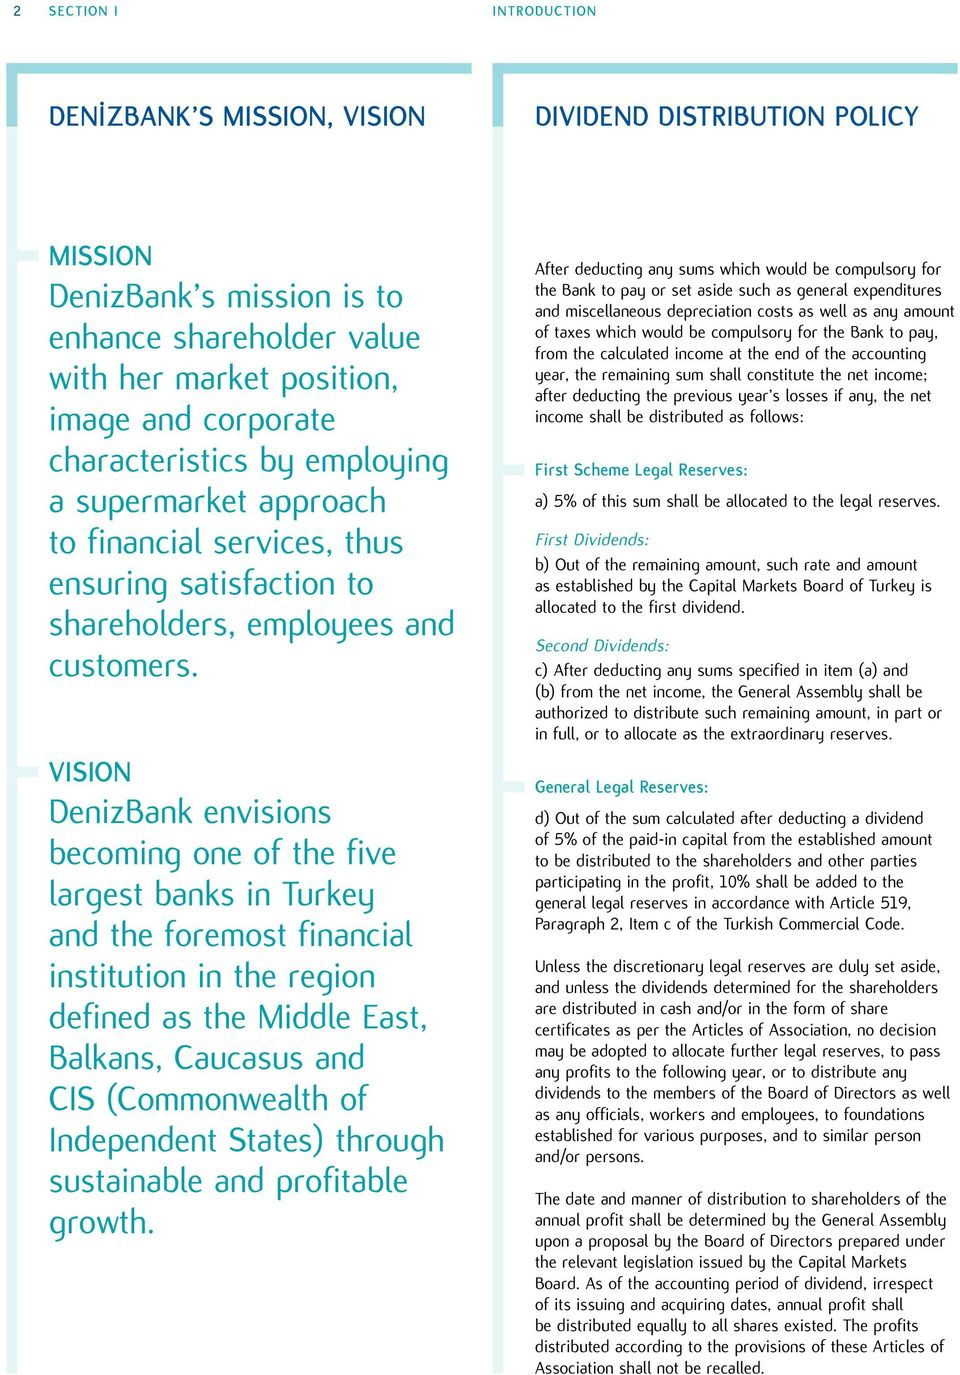 VISION DenizBank envisions becoming one of the five largest banks in Turkey and the foremost financial institution in the region defined as the Middle East, Balkans, Caucasus and CIS (Commonwealth of